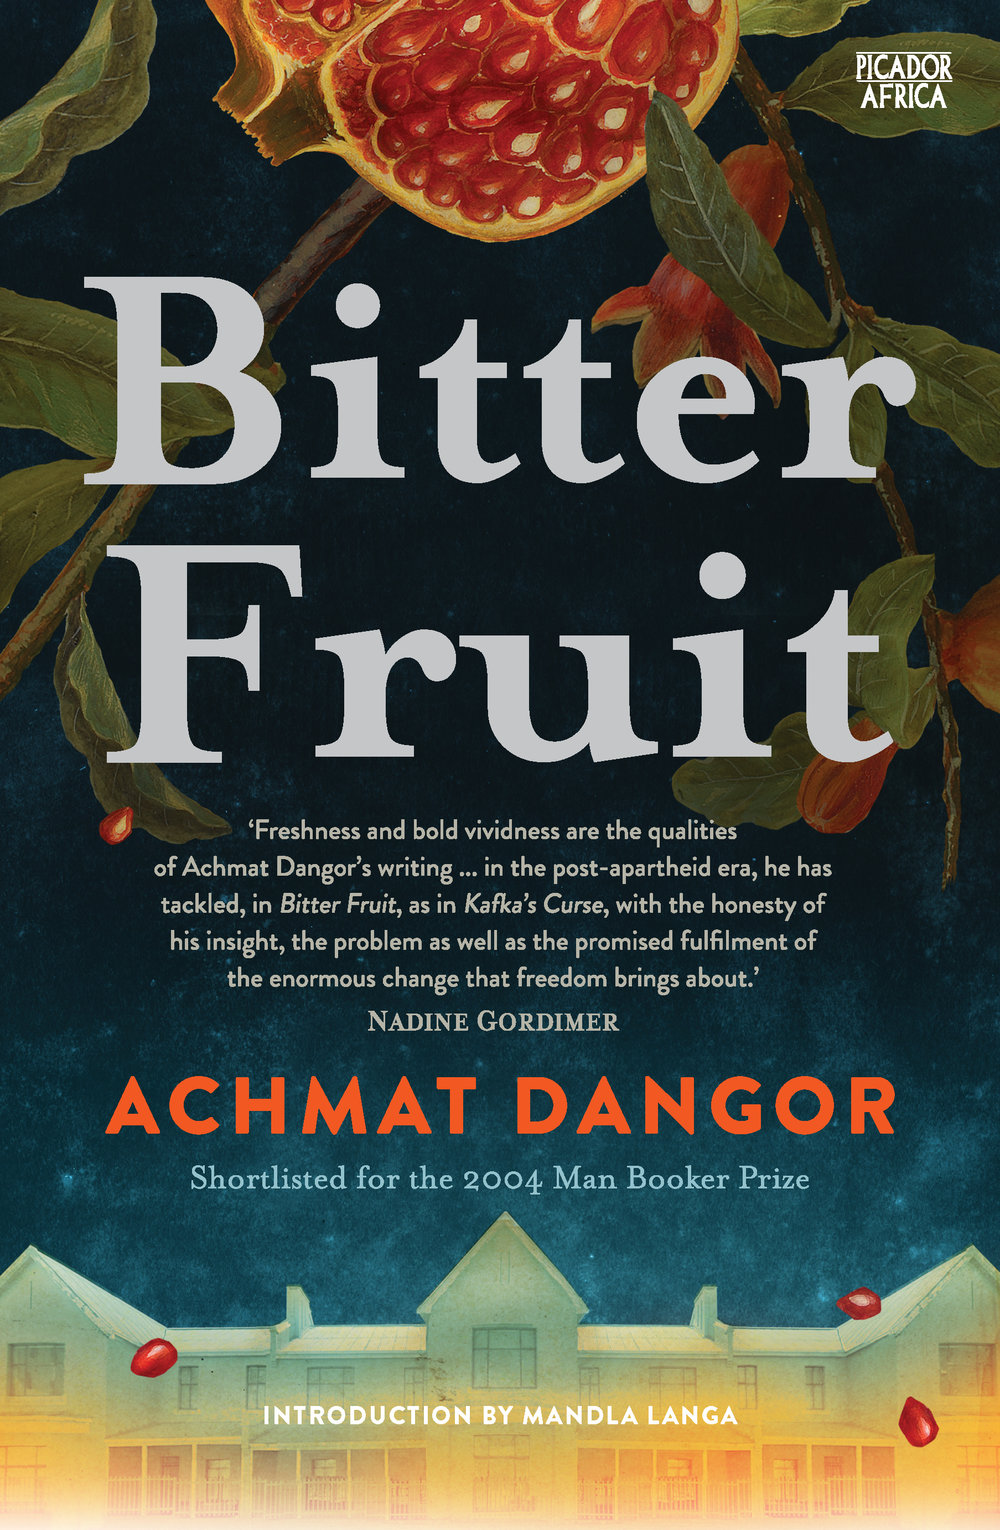 BITTER FRUIT Literary fiction, 256 pages Atlantic Books - September 30, 2004 Shortlisted for Man Booker Prize 2004 and the IMPAC Literary Award 2003; Voted one of the 100 best books of 2004 by Canada's Globe & Mail When Silas Ali last encountered the Lieutenant, he was locked in a police van as the Lieutenant raped his wife. When Silas sees him again, after apartheid's crumbling, crimes from the past erupt into the present.